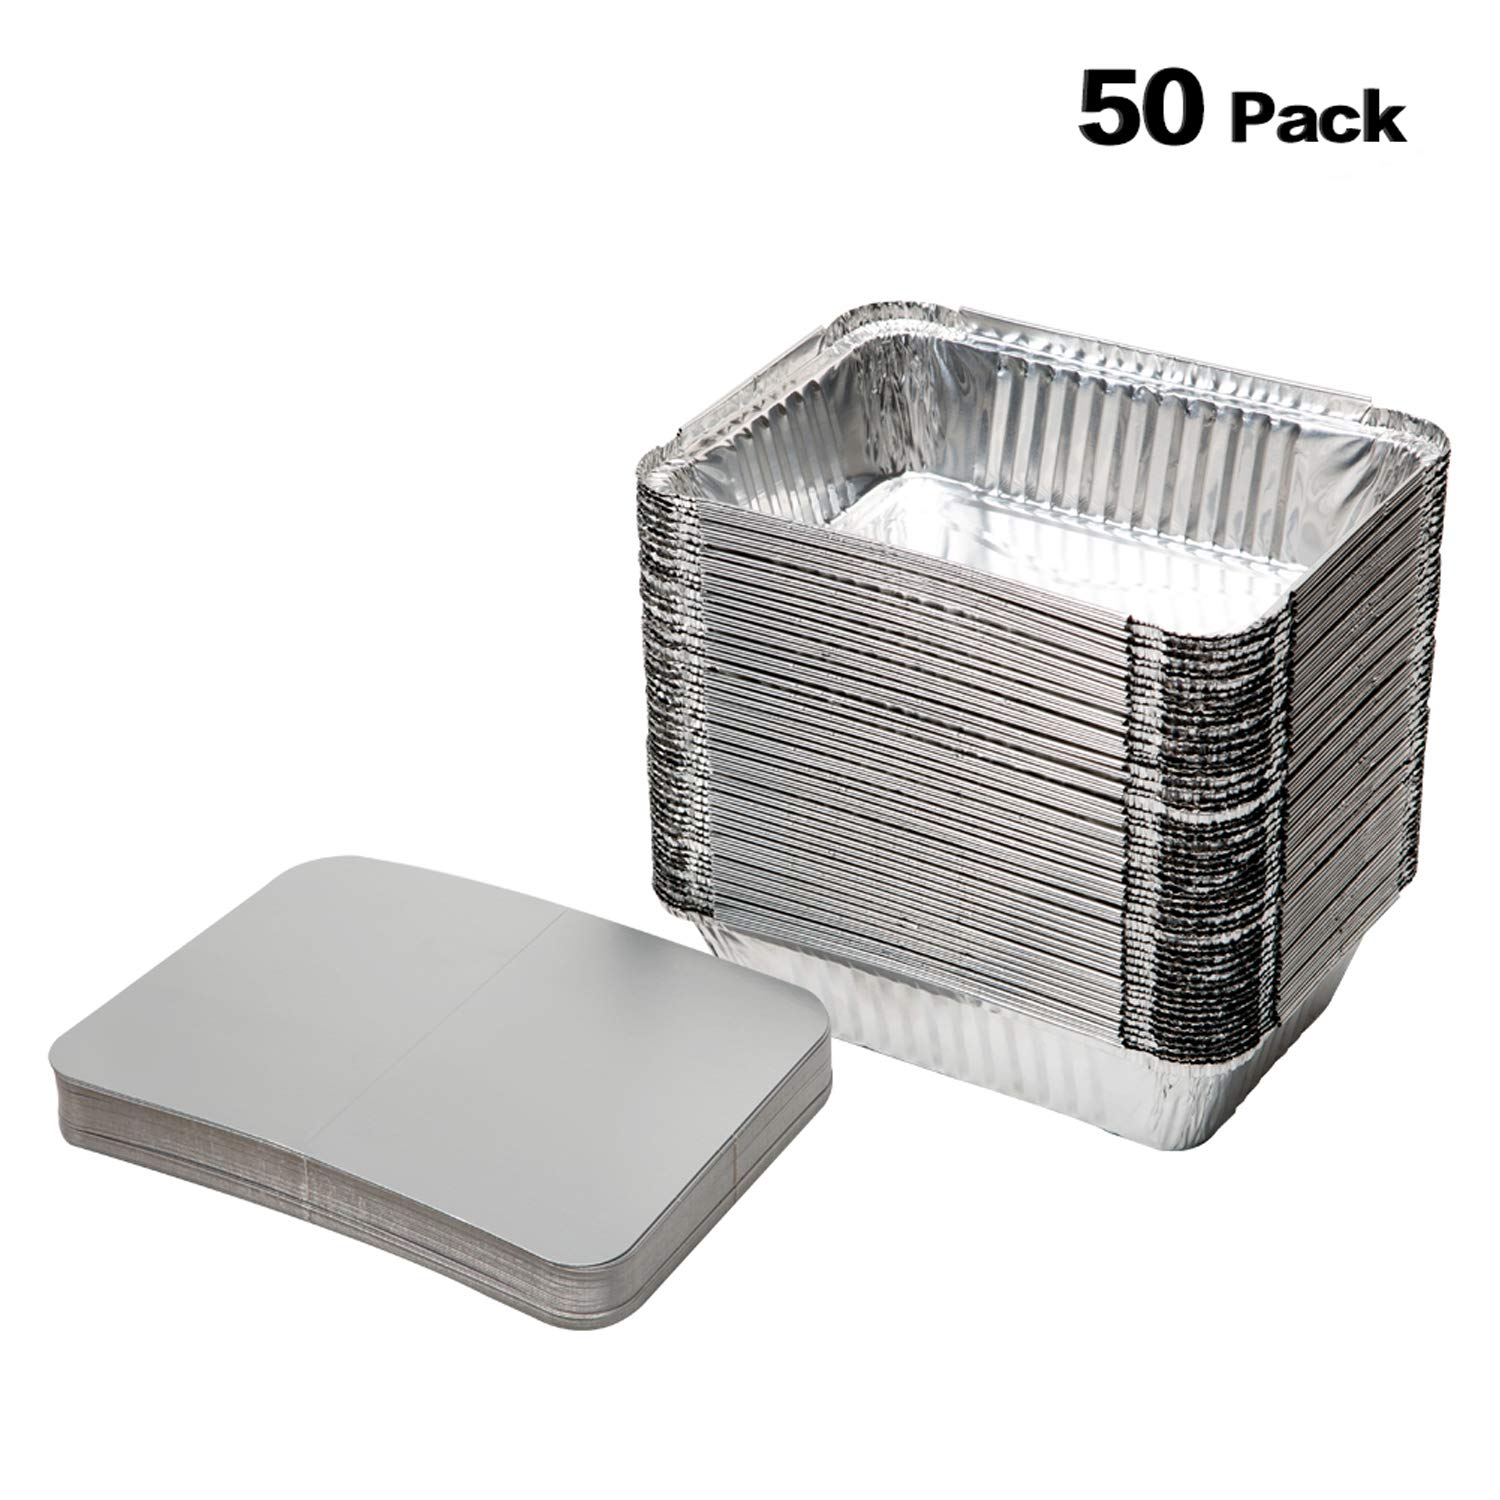 XIAFEI Disposable Durable Aluminum Rectangular Foil Pans, TakeOut Containers, Pack of 50 With Board Lids